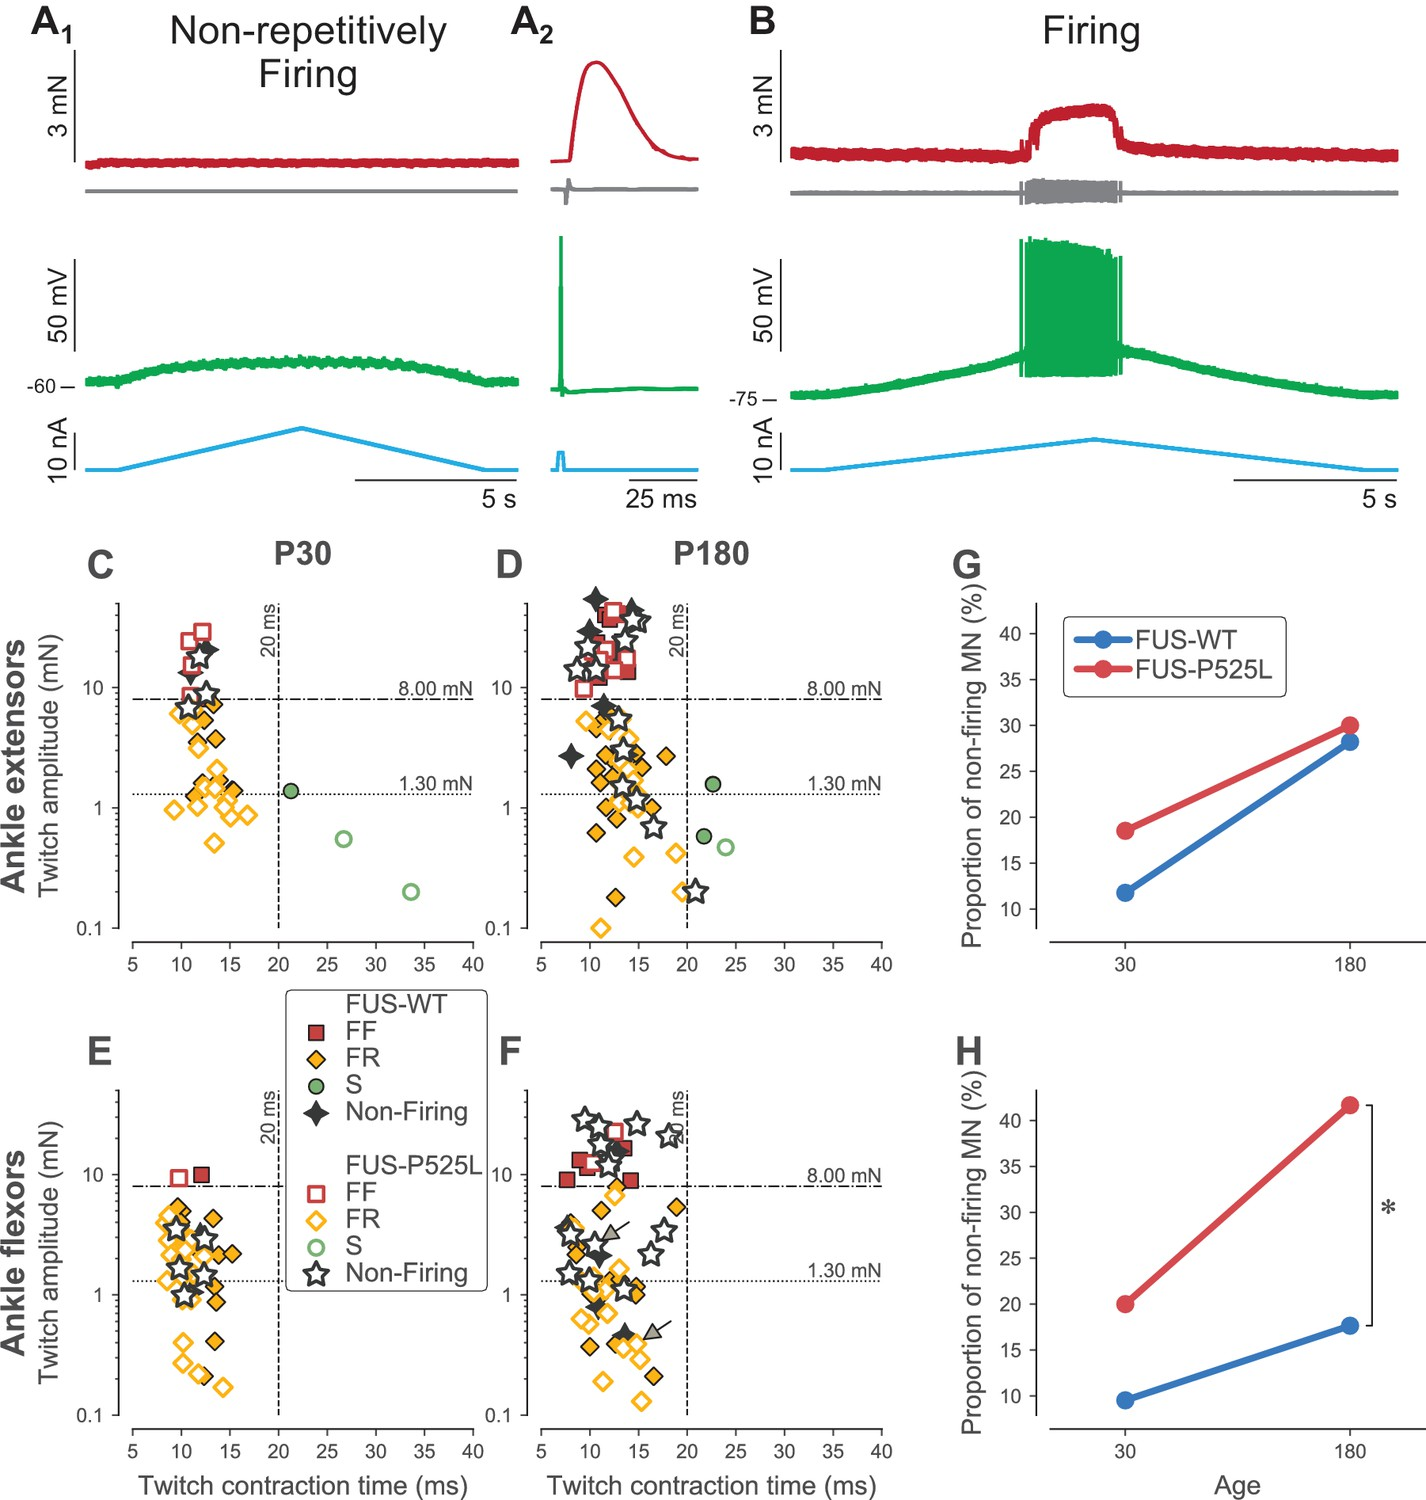 hight resolution of loss of repetitive firing in a subpopulation of cells of fus mice